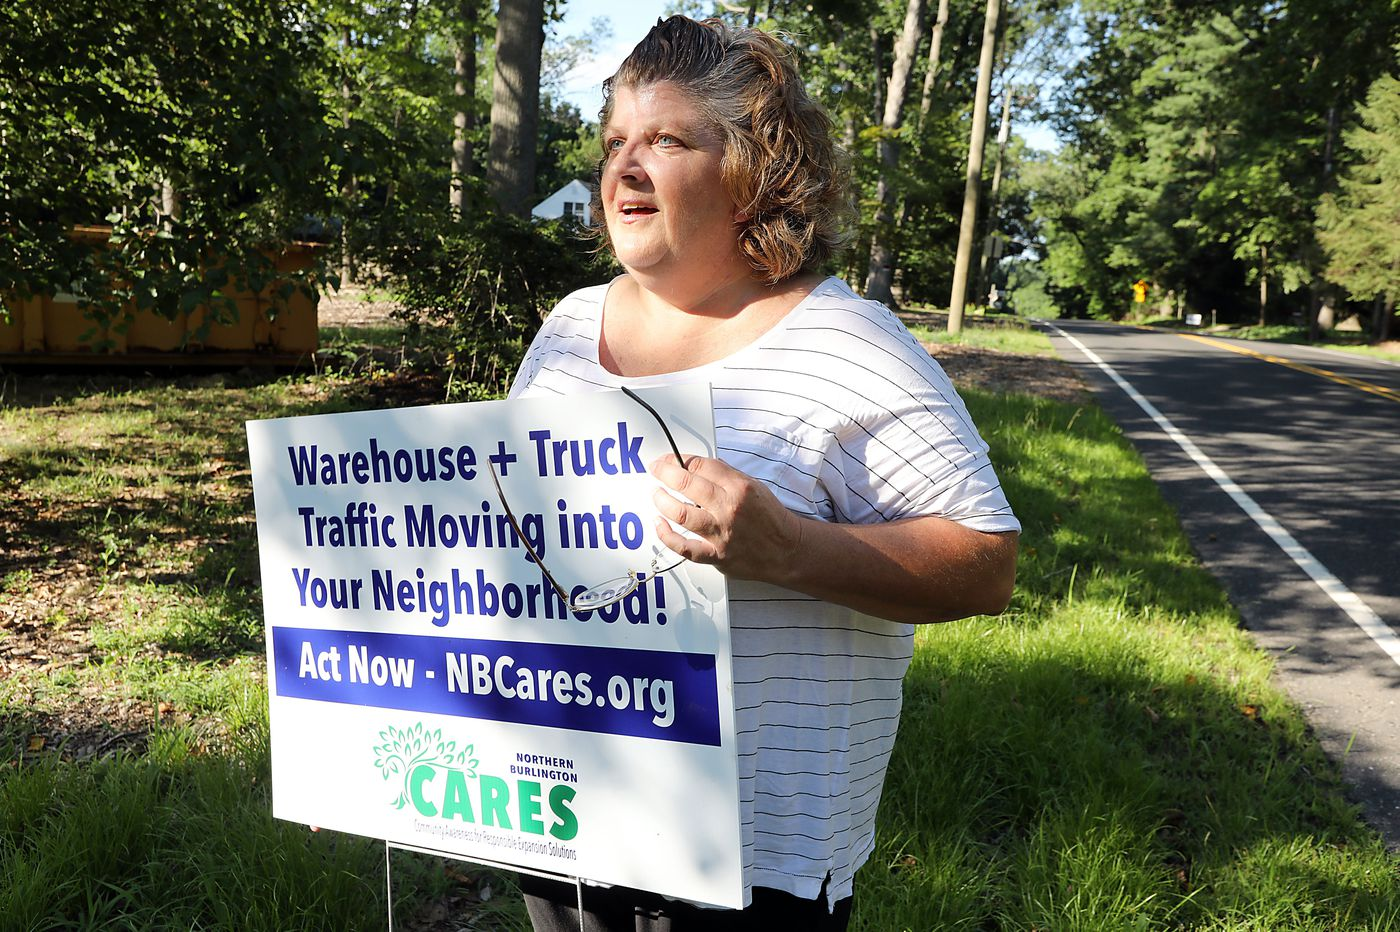 Near Amazon centers in rural Burlington County, other mega-warehouse plans stir fear of rumbling traffic